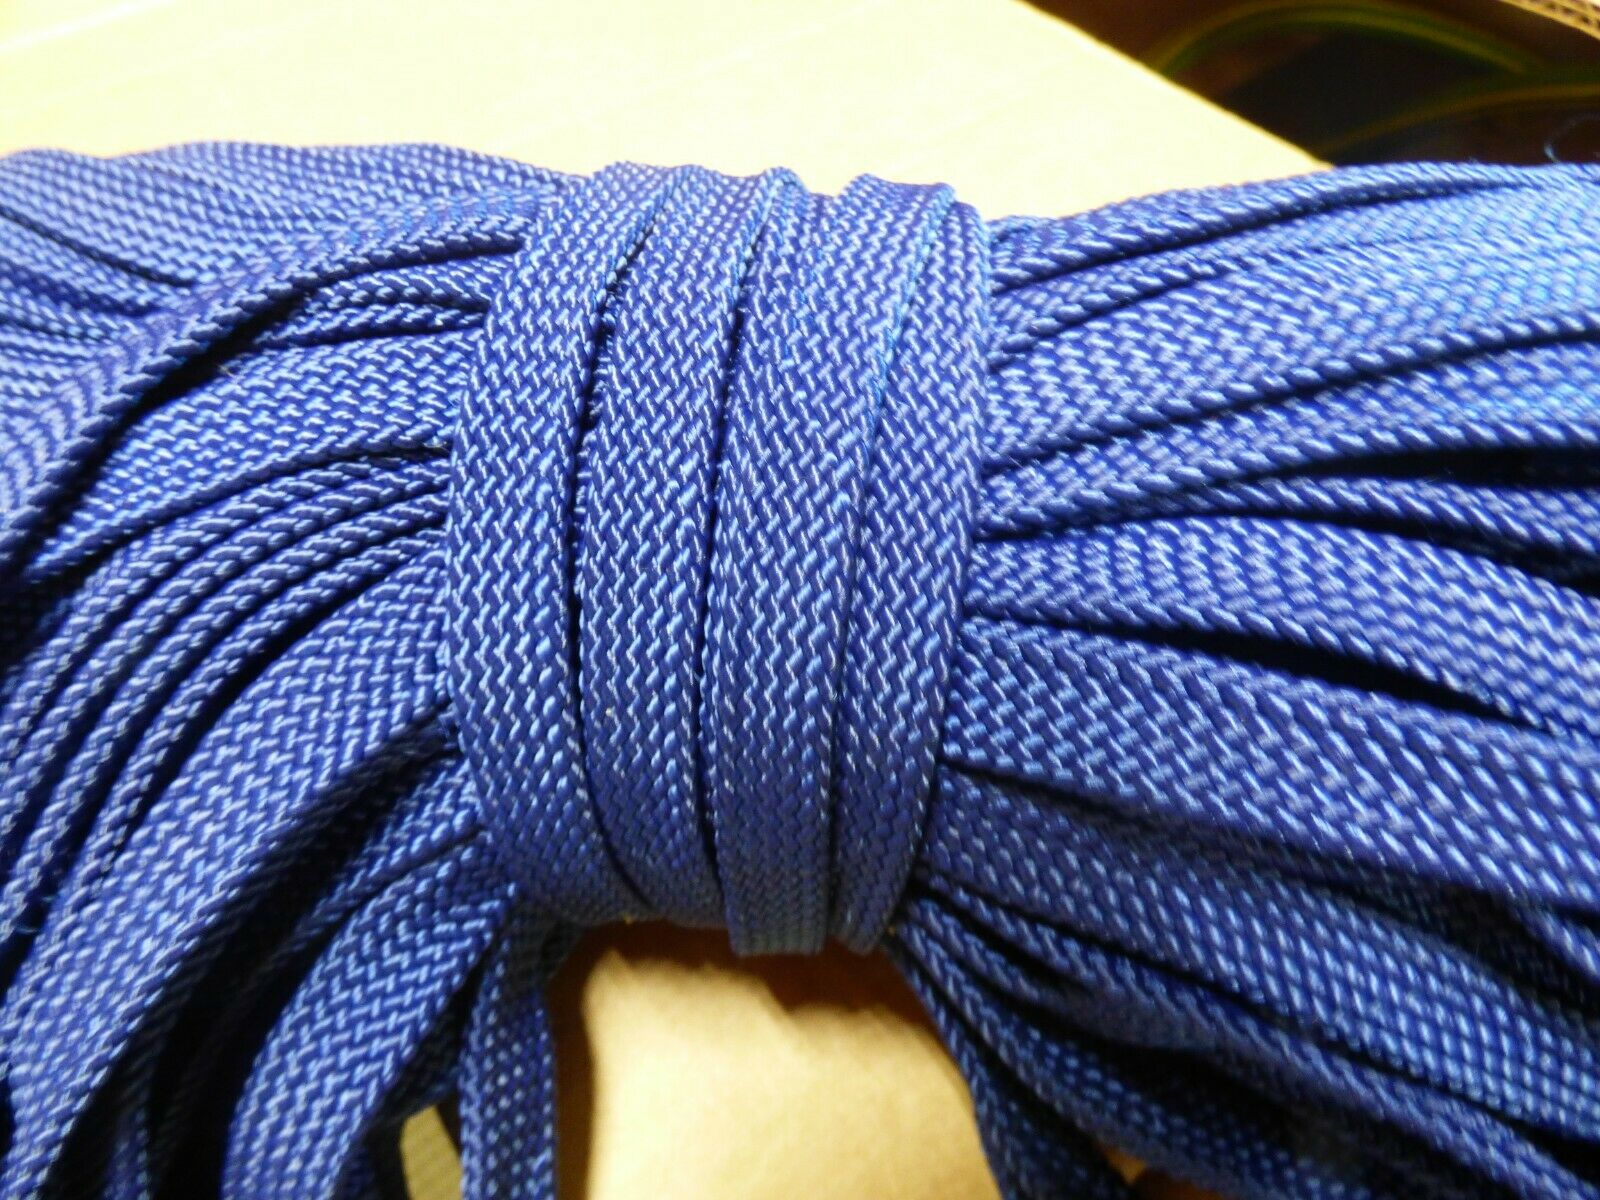 7 16 x 179 ft.  Hollow  Flat Braid Navy Nylon Rope Hank.Discounted. Made in USA  hot limited edition